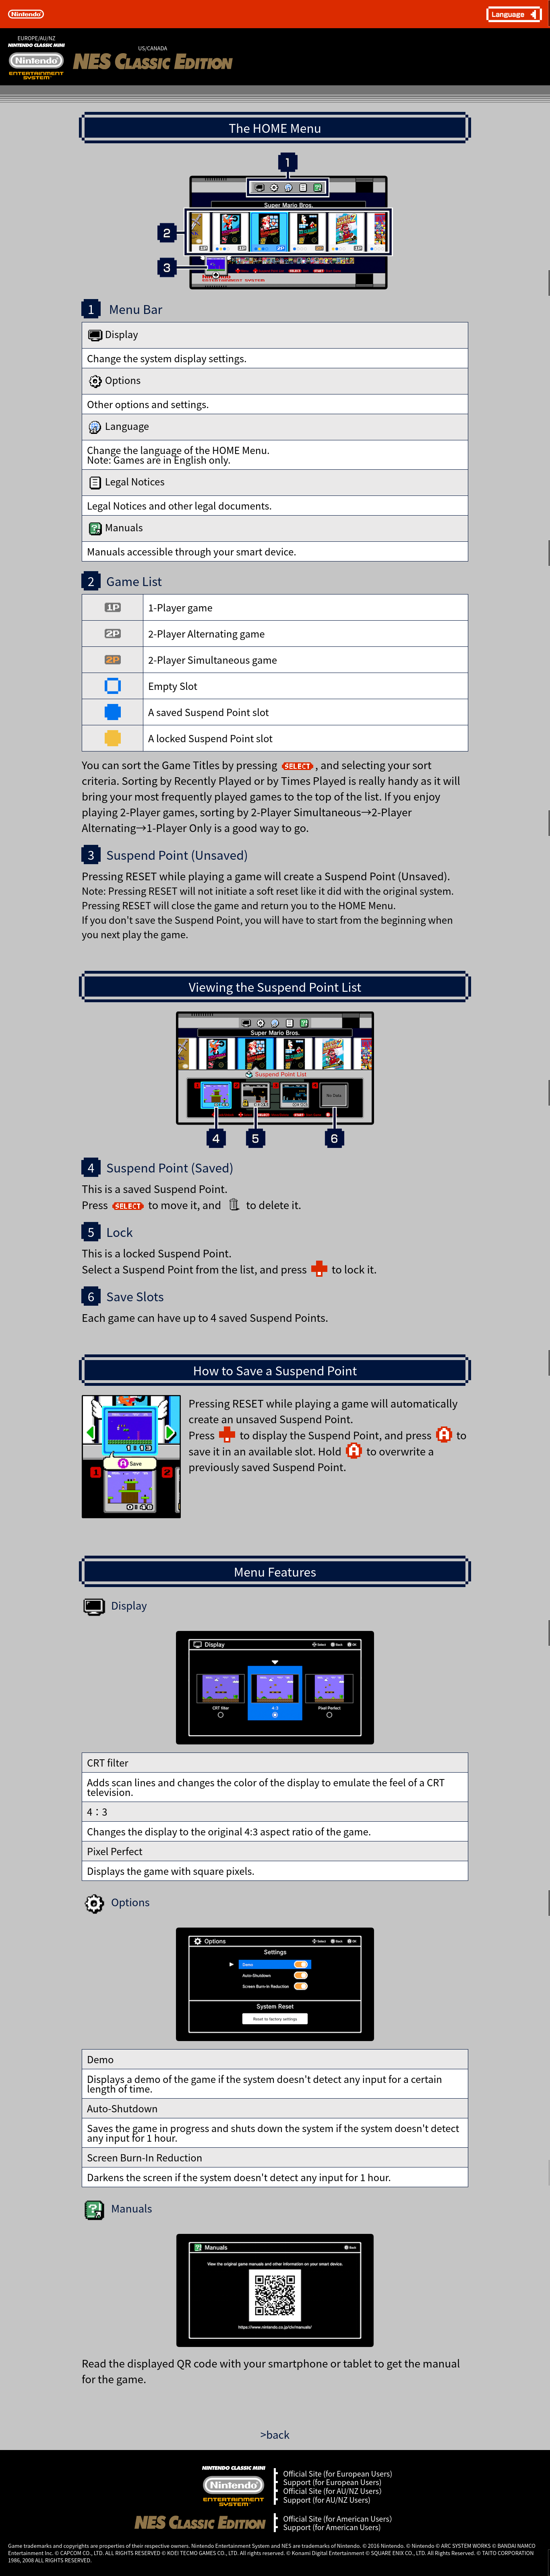 NES Classic Edition Webpage manuals